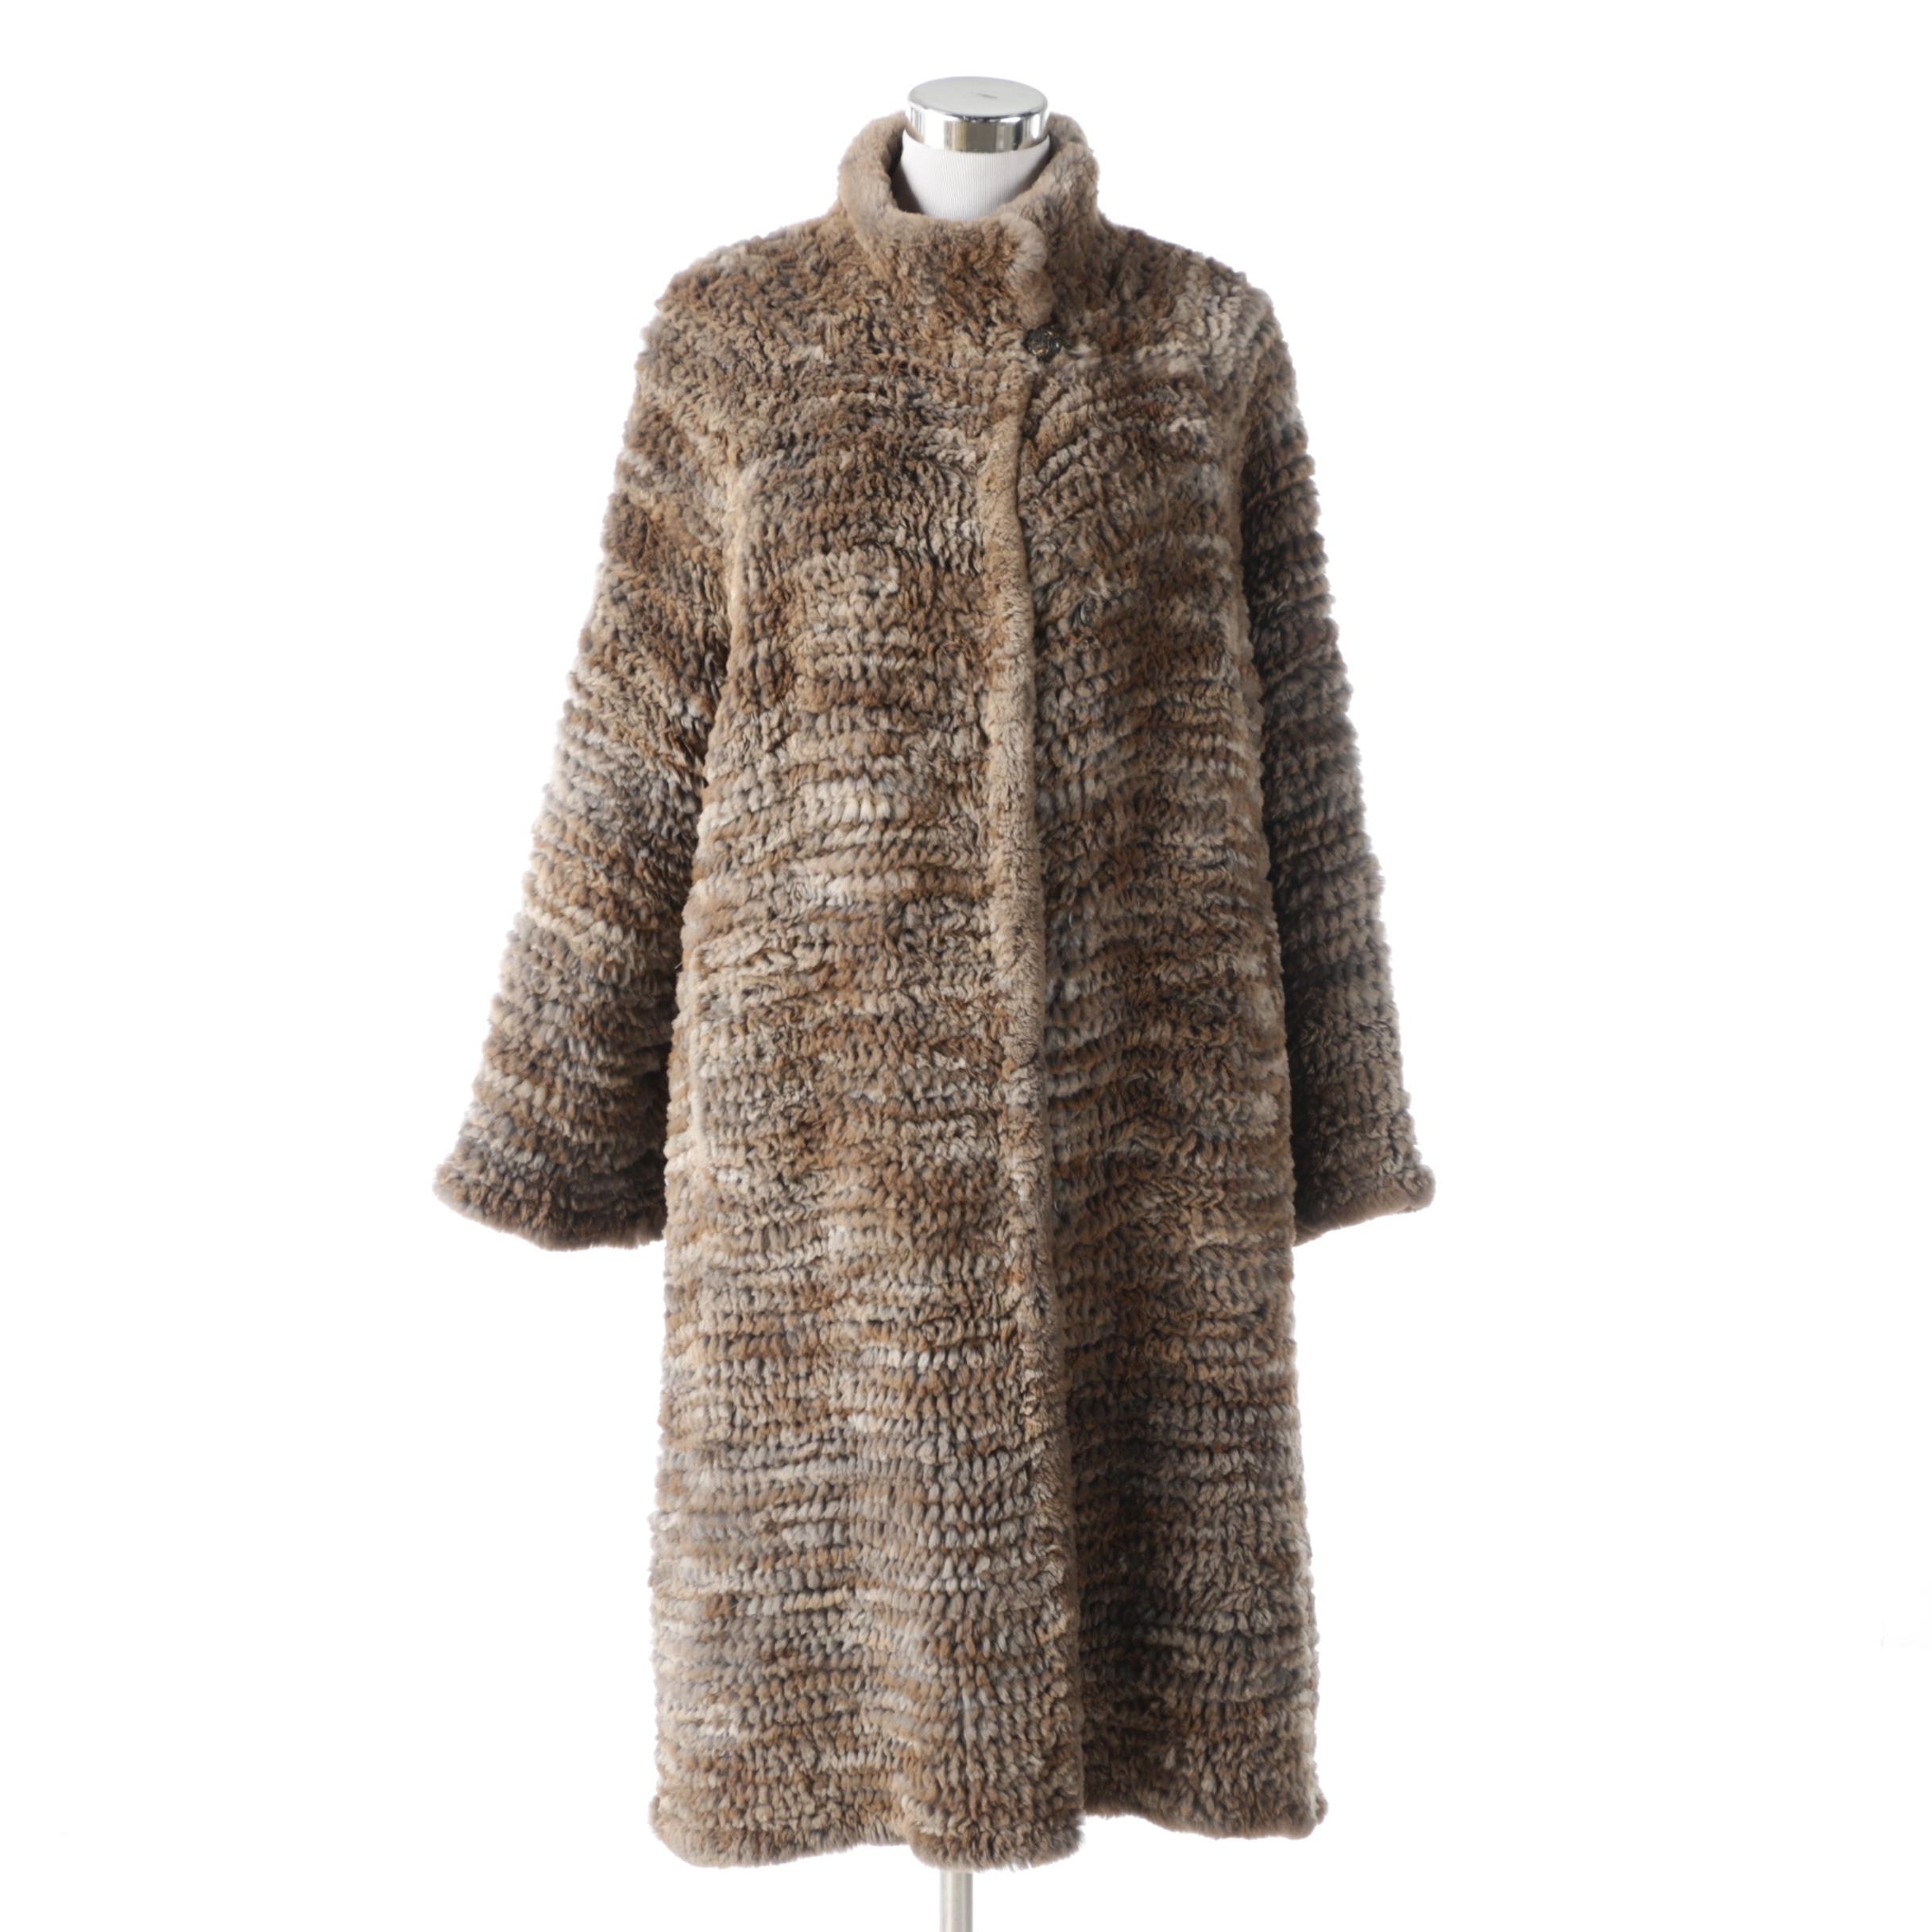 Cassin New York Knit Rabbit Fur Coat